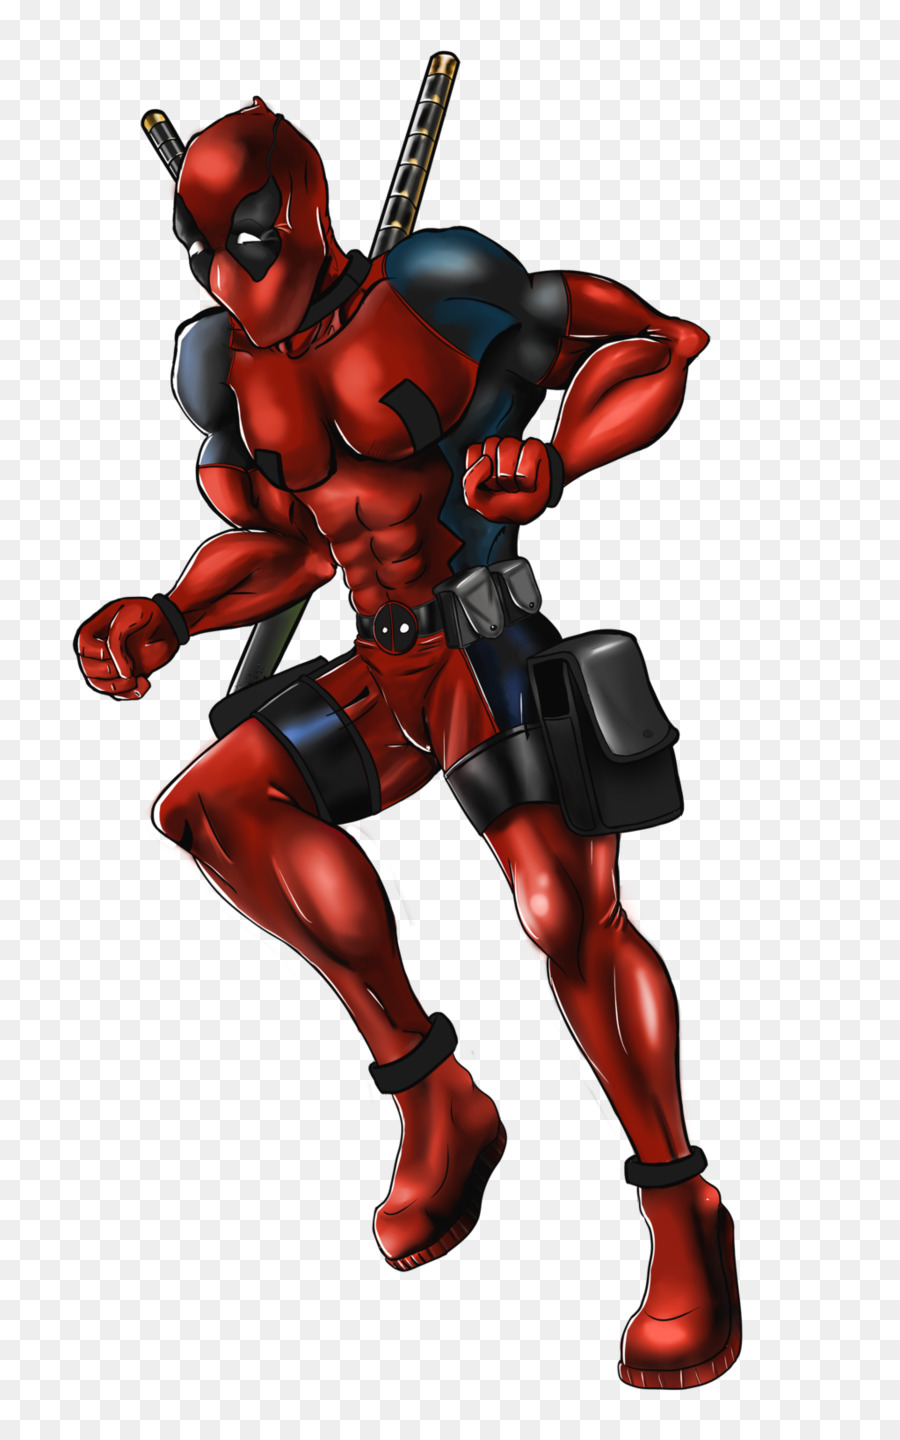 Spider Man Iron Man Deadpool Cartoon Superhero   Deadpool